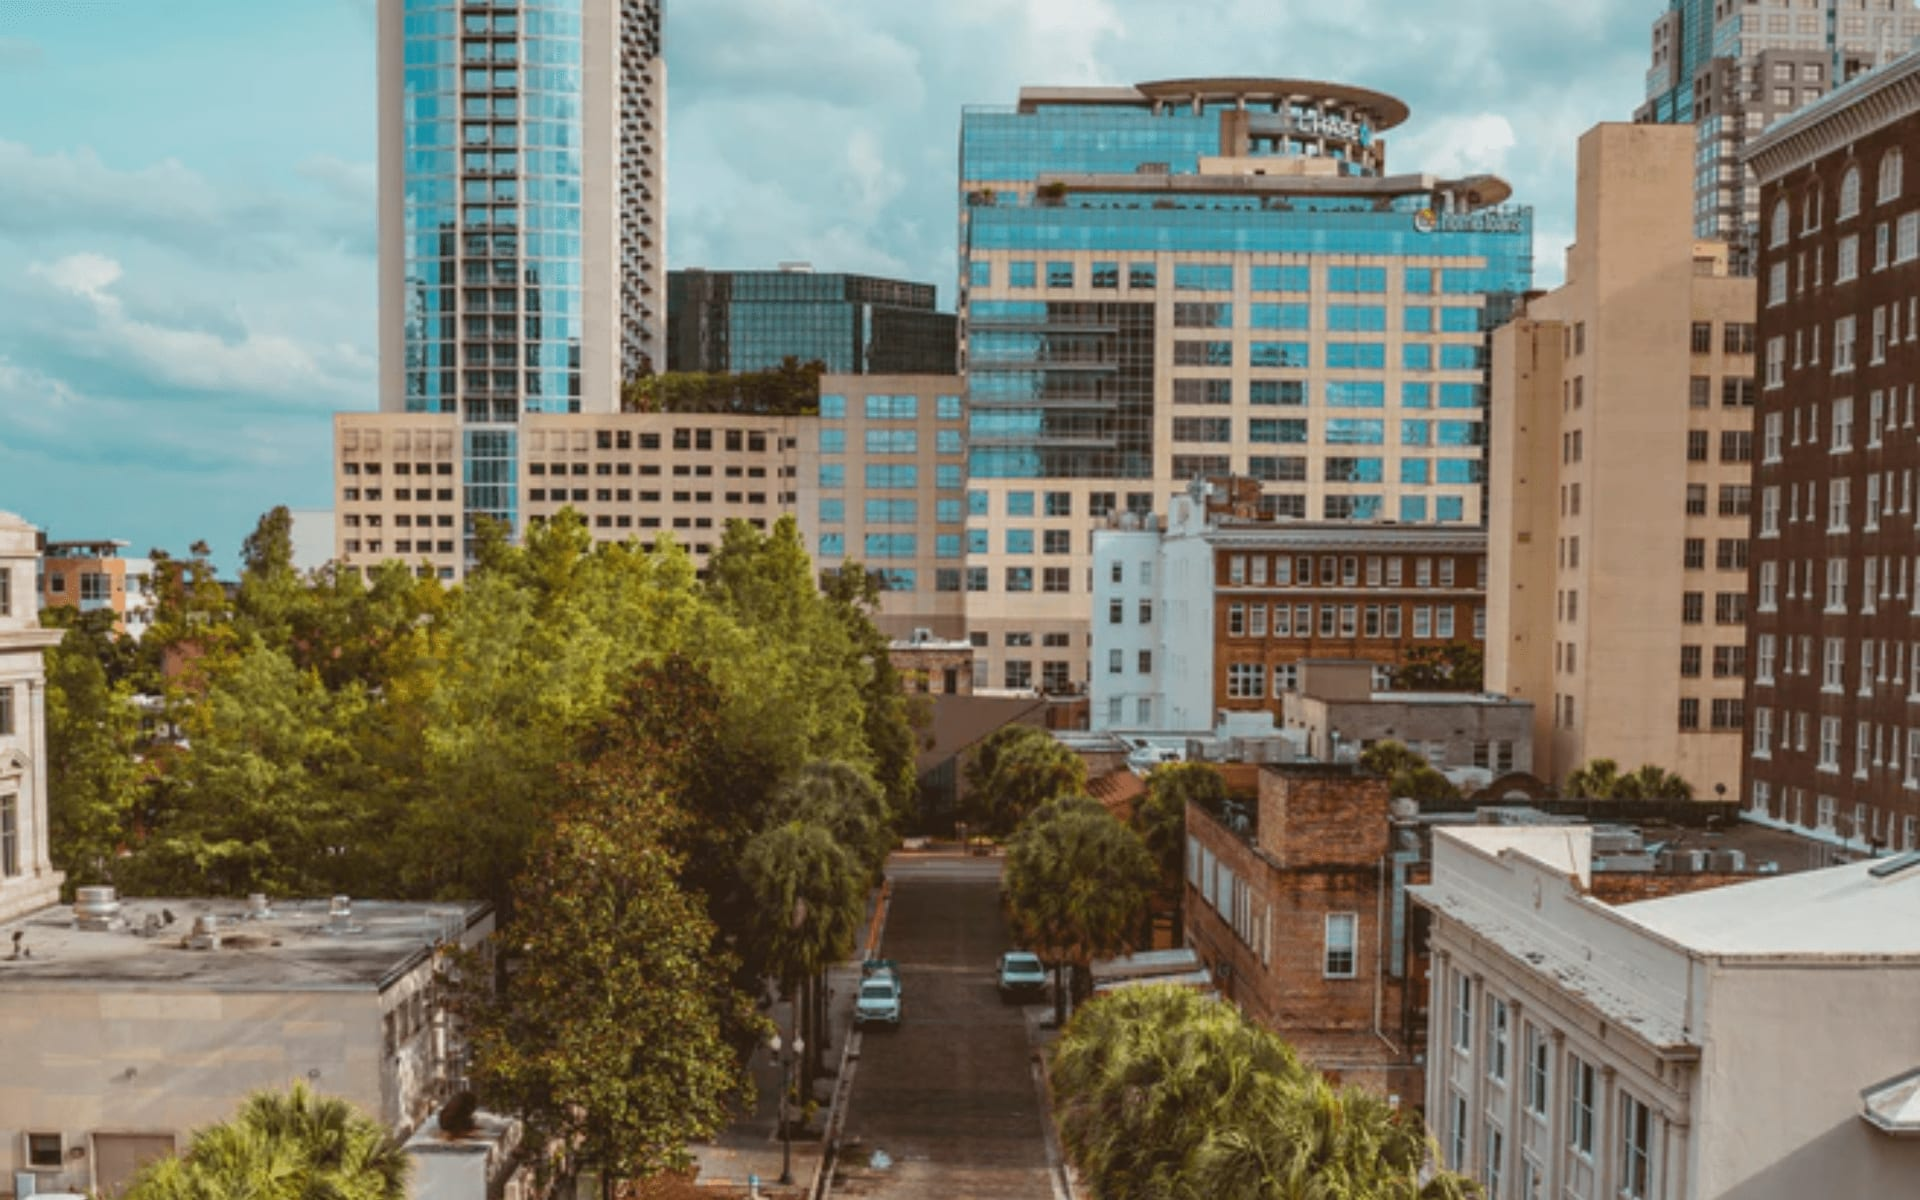 6 Things to Consider Before Relocating to Orlando